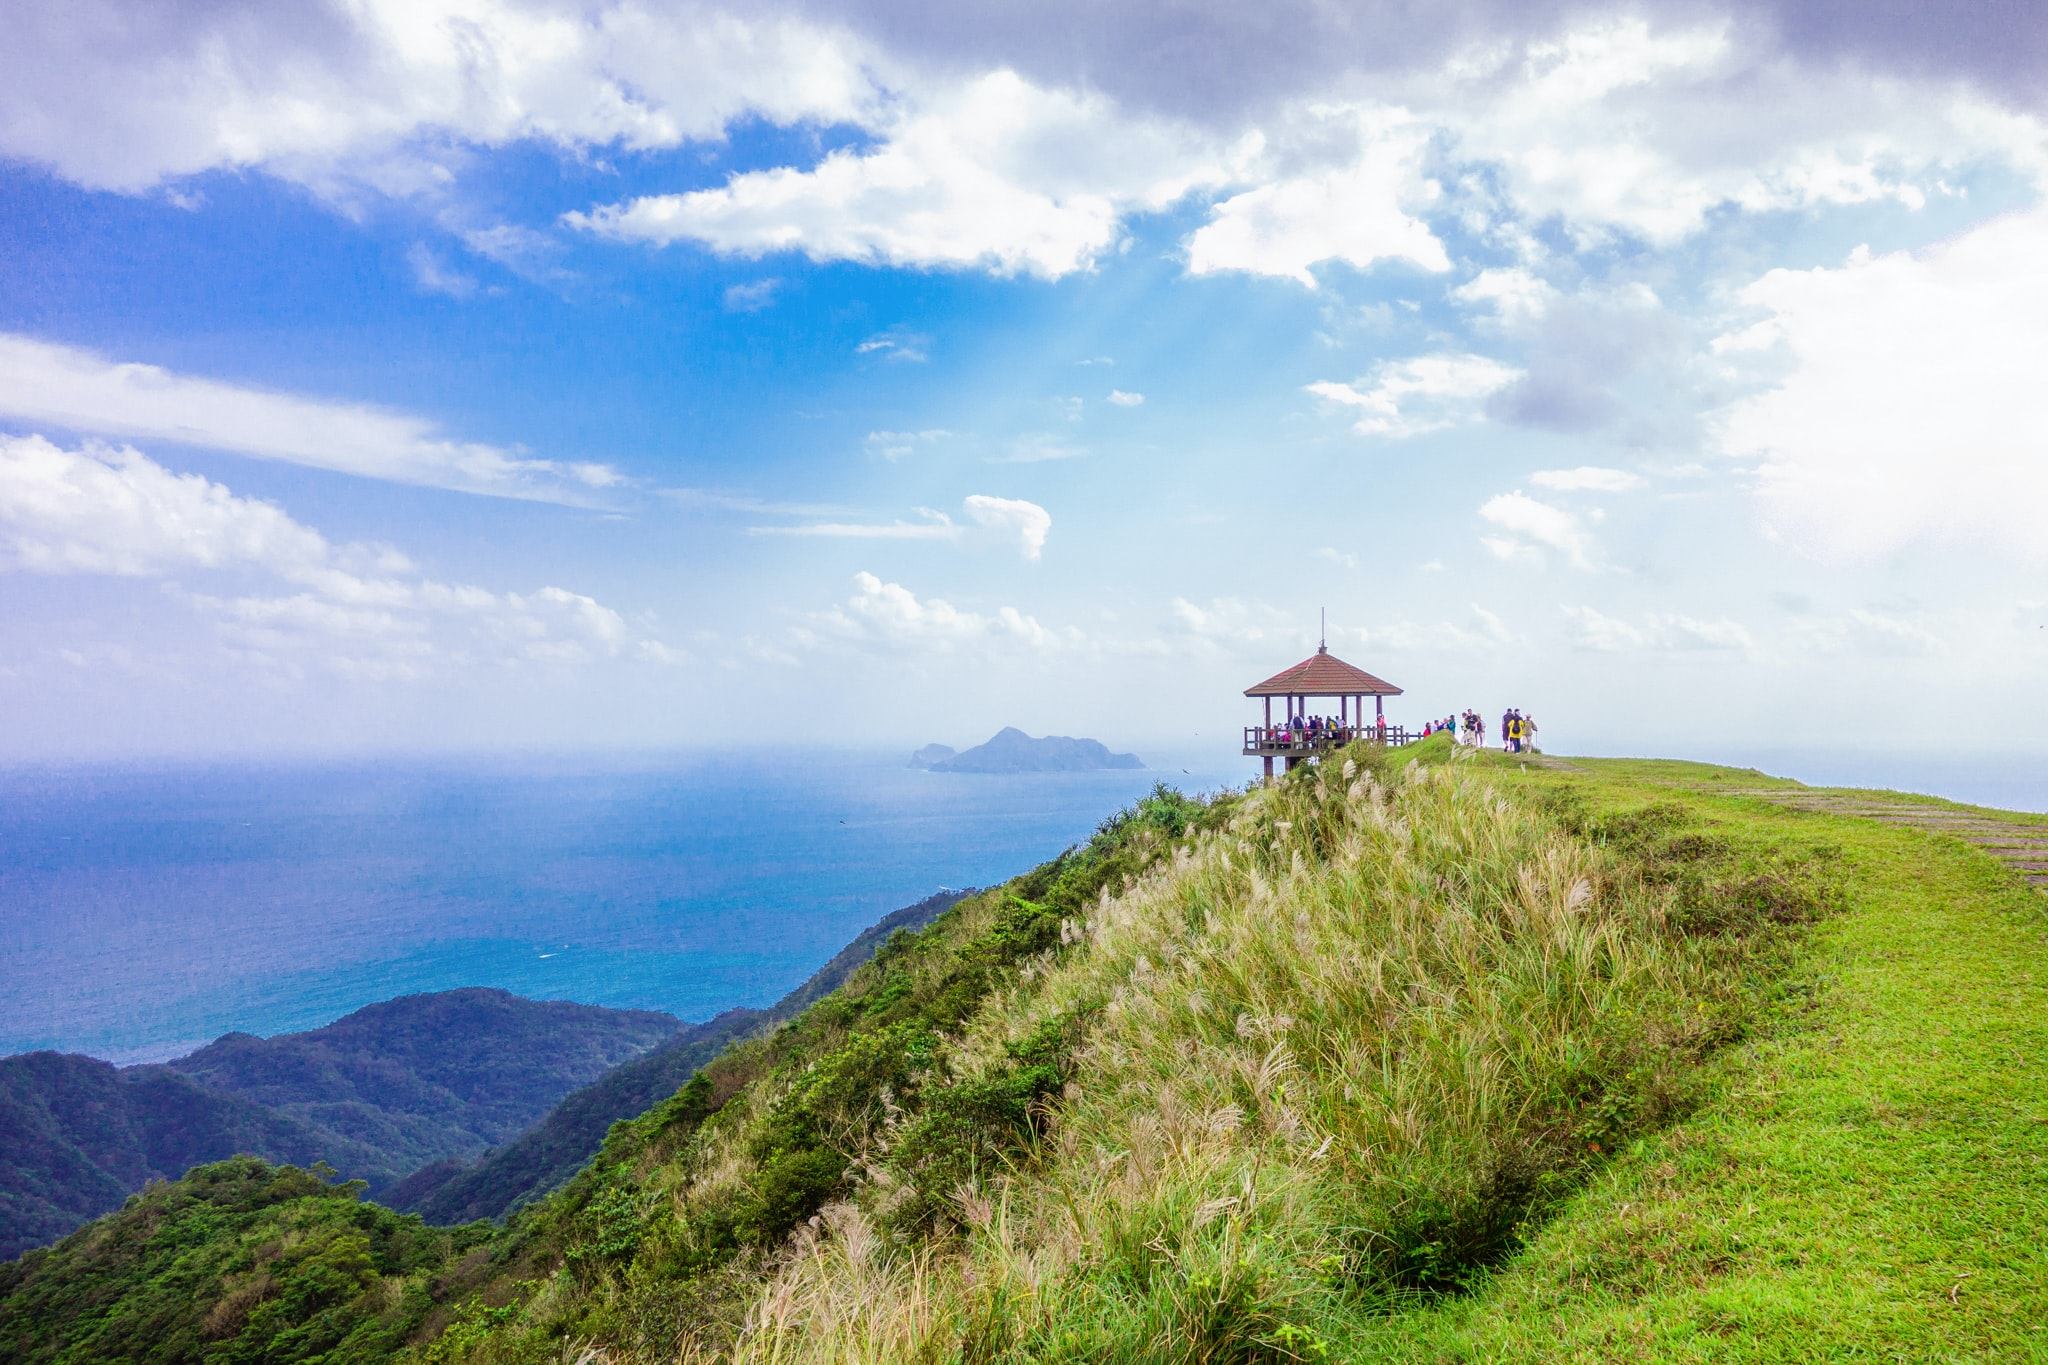 brown gazebo on top of green mountain overlooking sea during daytime landscape photography